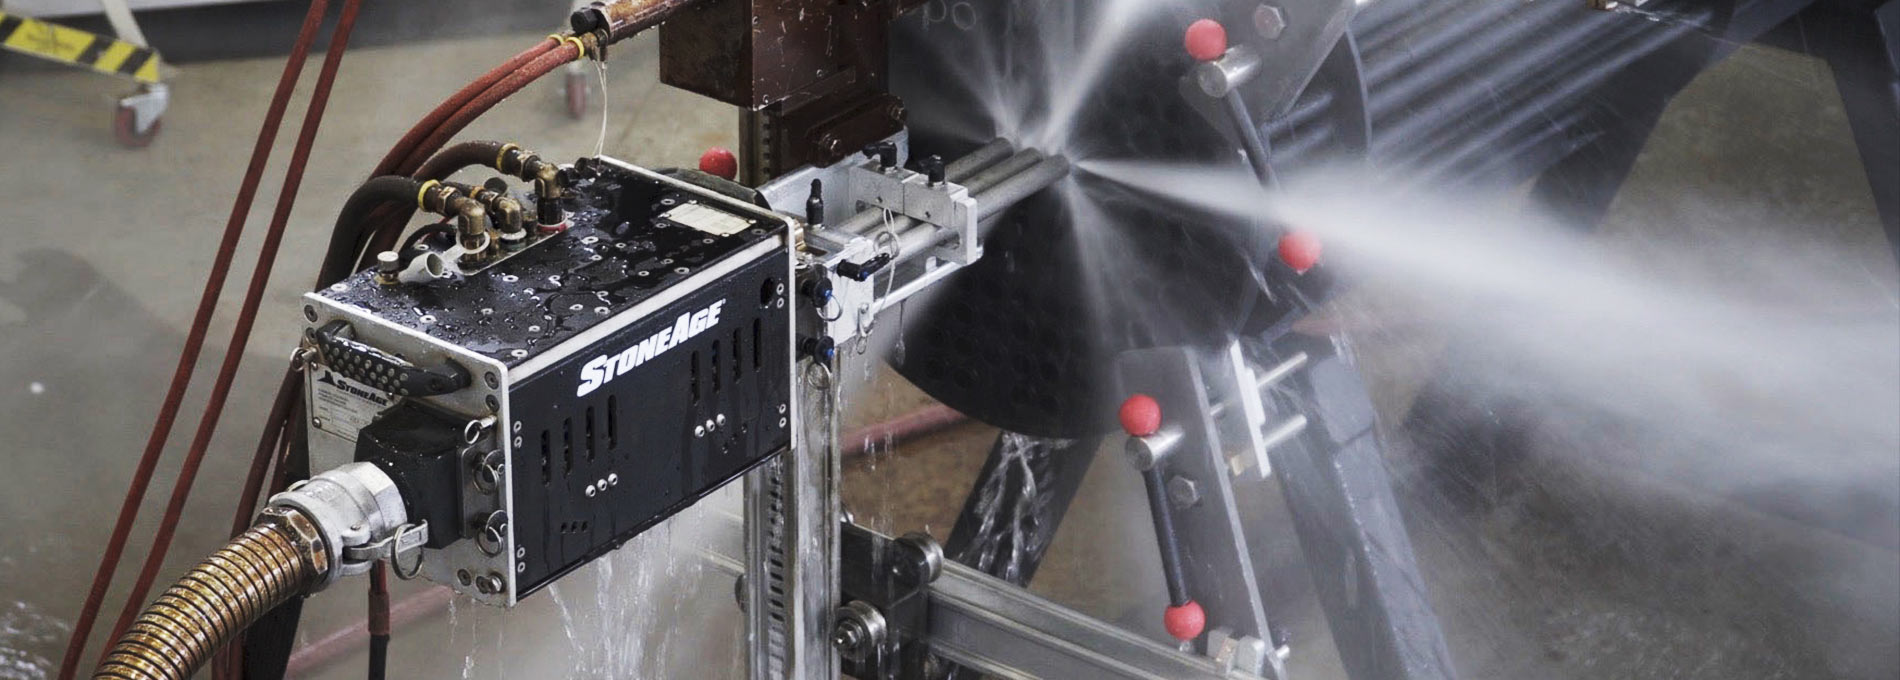 ABX-3L triple lance tube cleaning